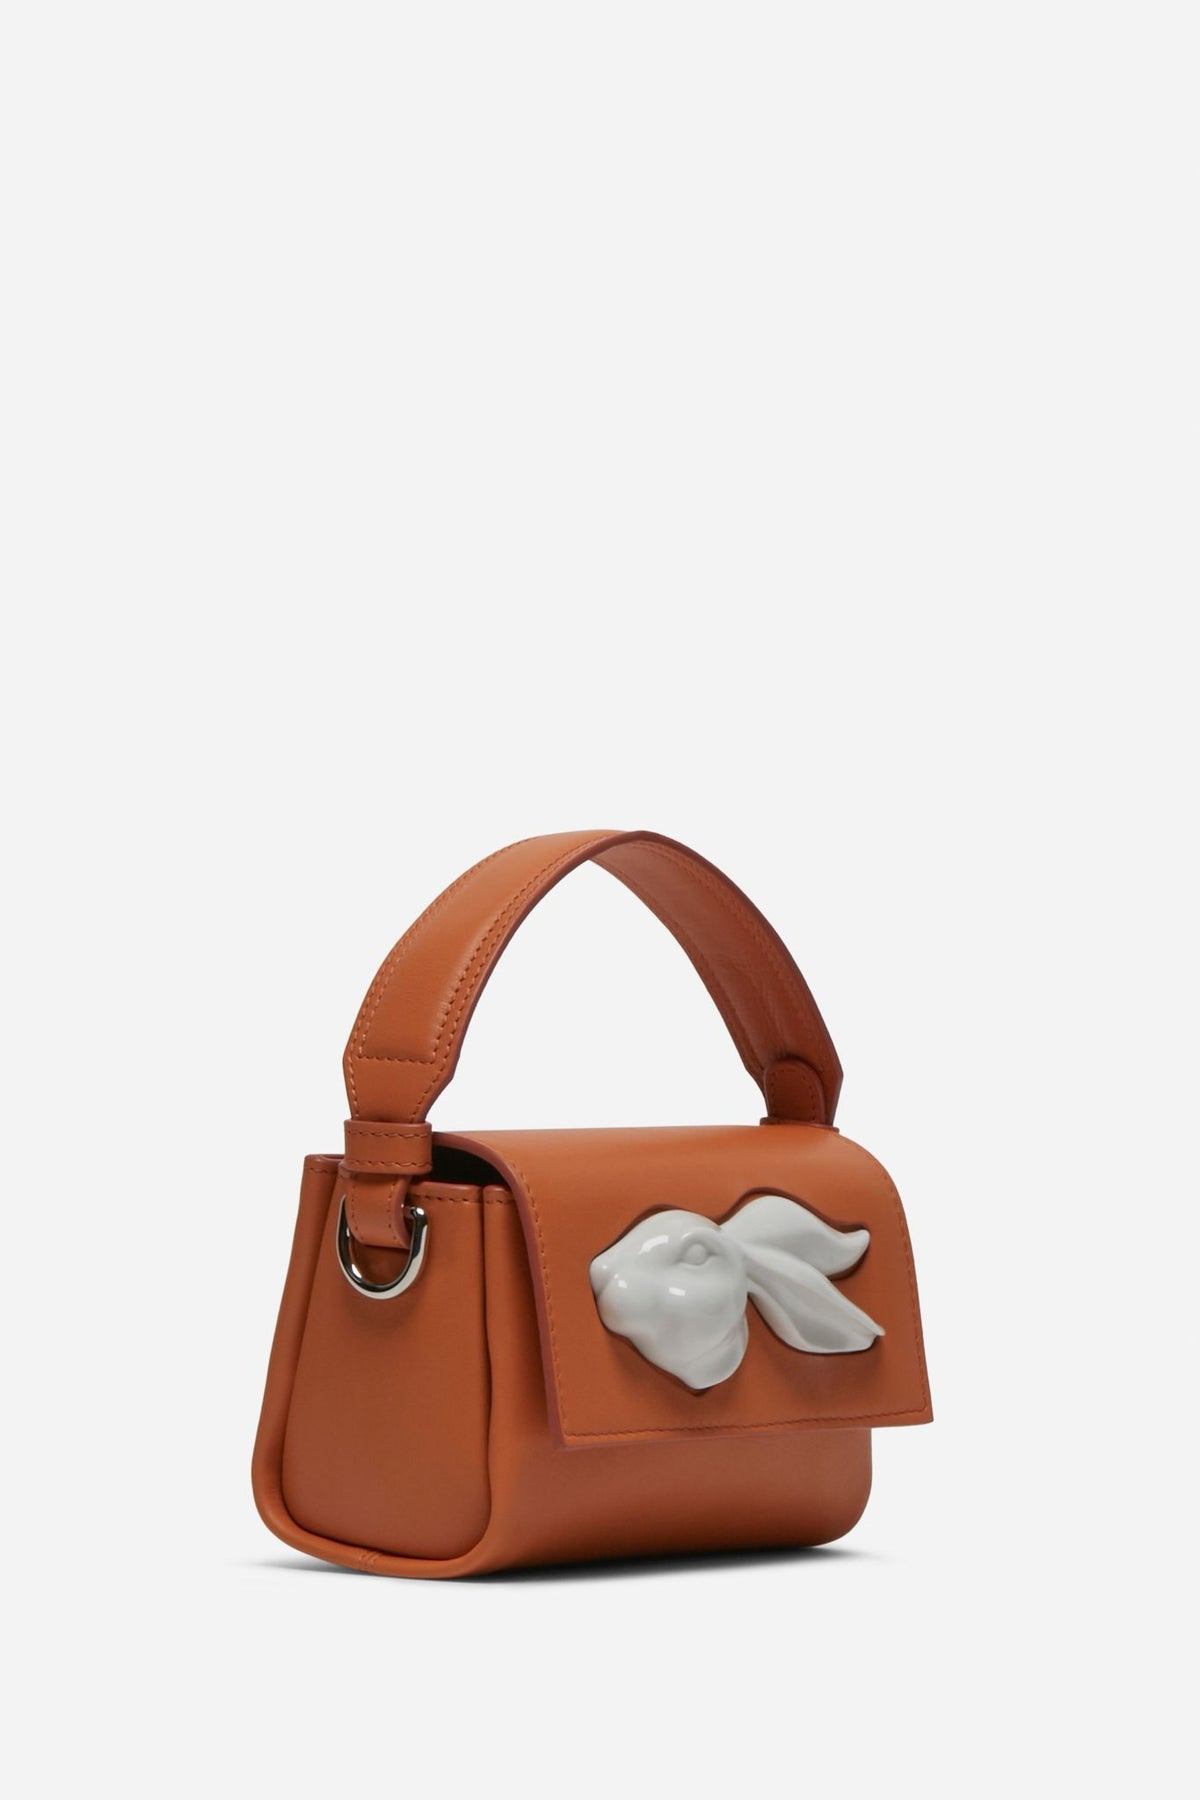 Mini Flap Rabbit Head Bag - Yam